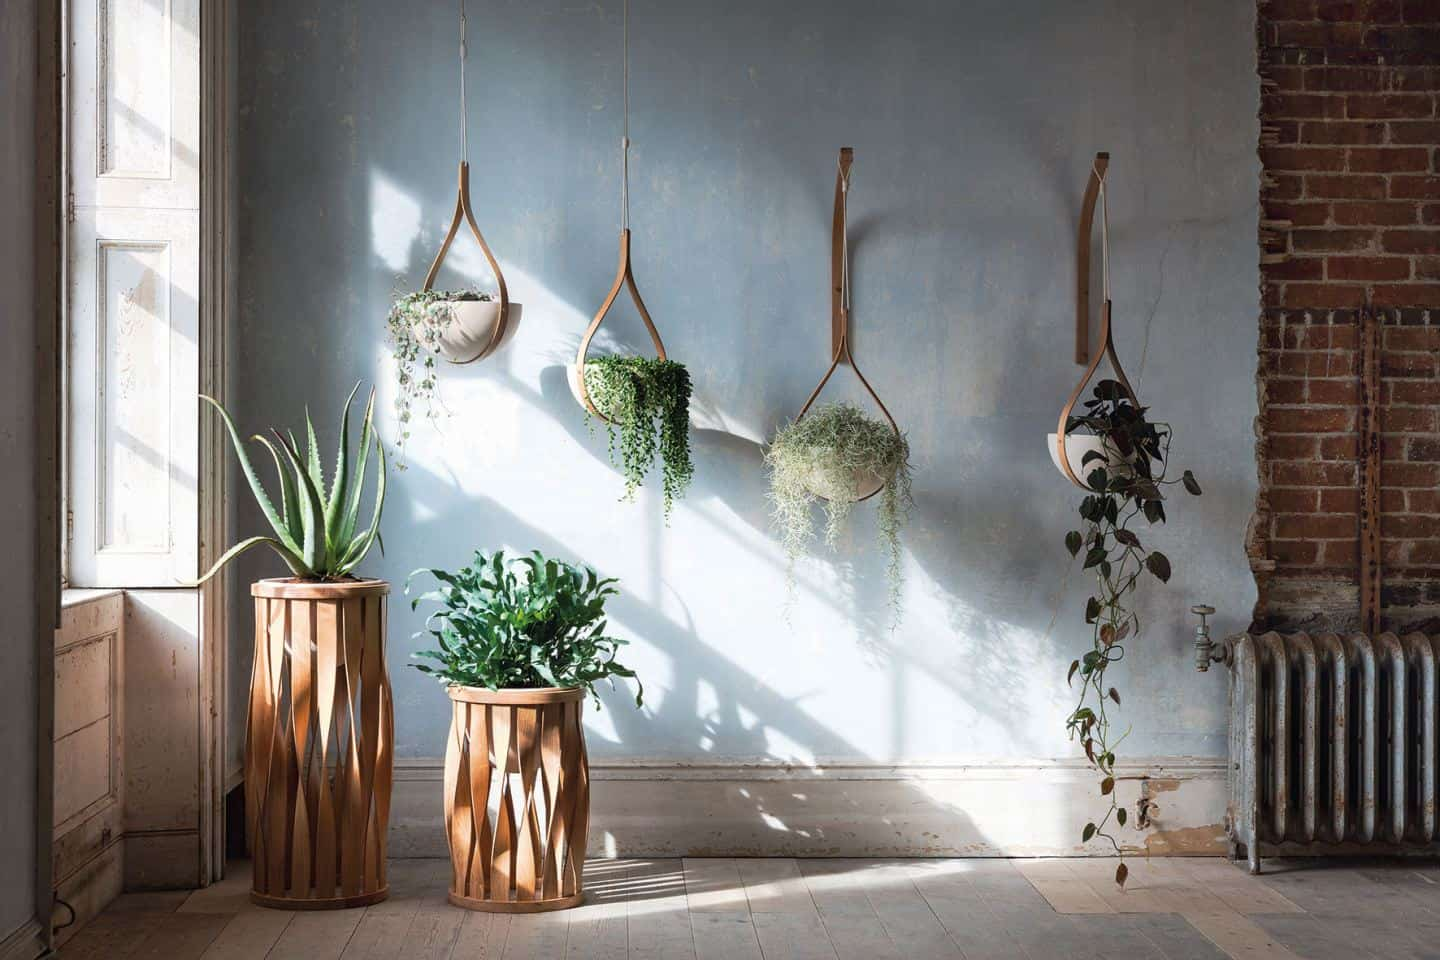 Quirky Planters - Morvah Ceiling Hanging Planter by Tom Raffield